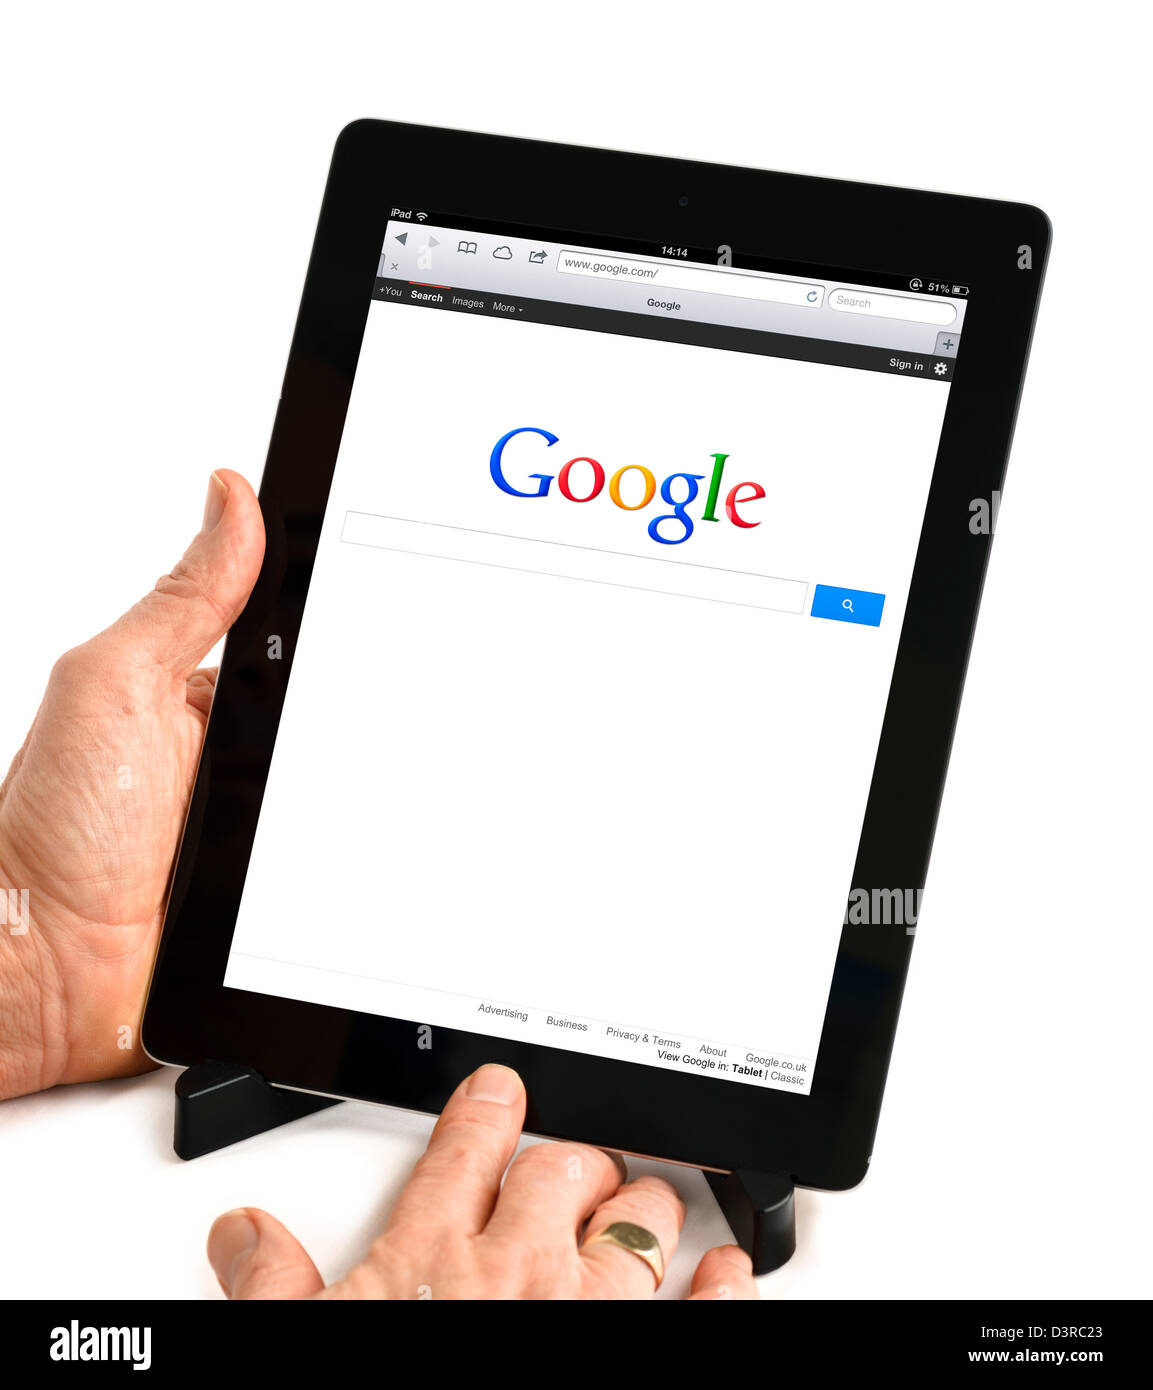 Google.com search viewed on a 4th generation iPad - Stock Image